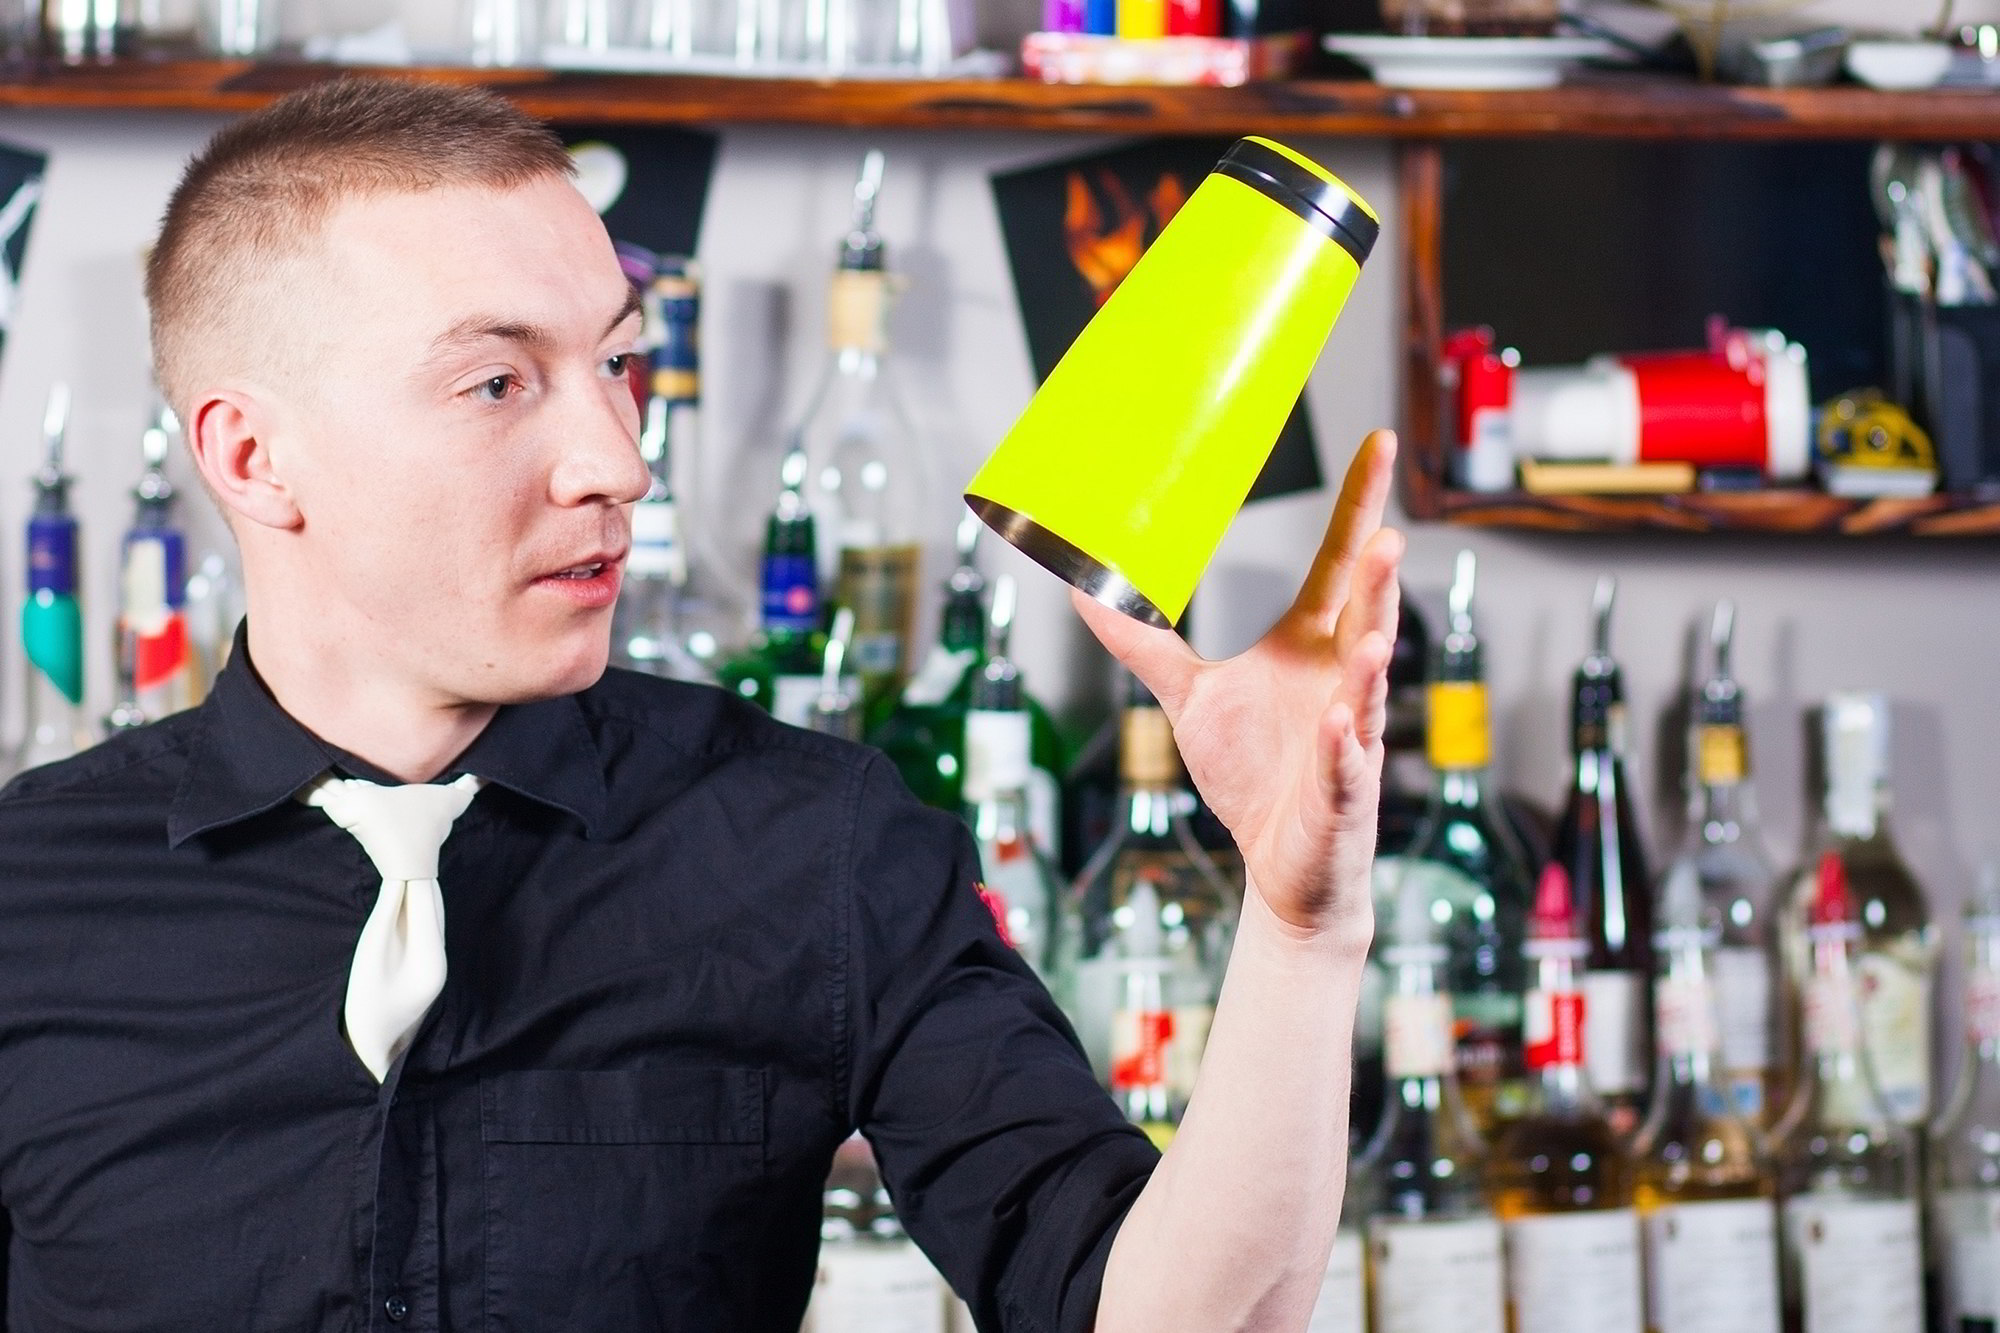 Flair Bartender Course Planned For 2016 in London